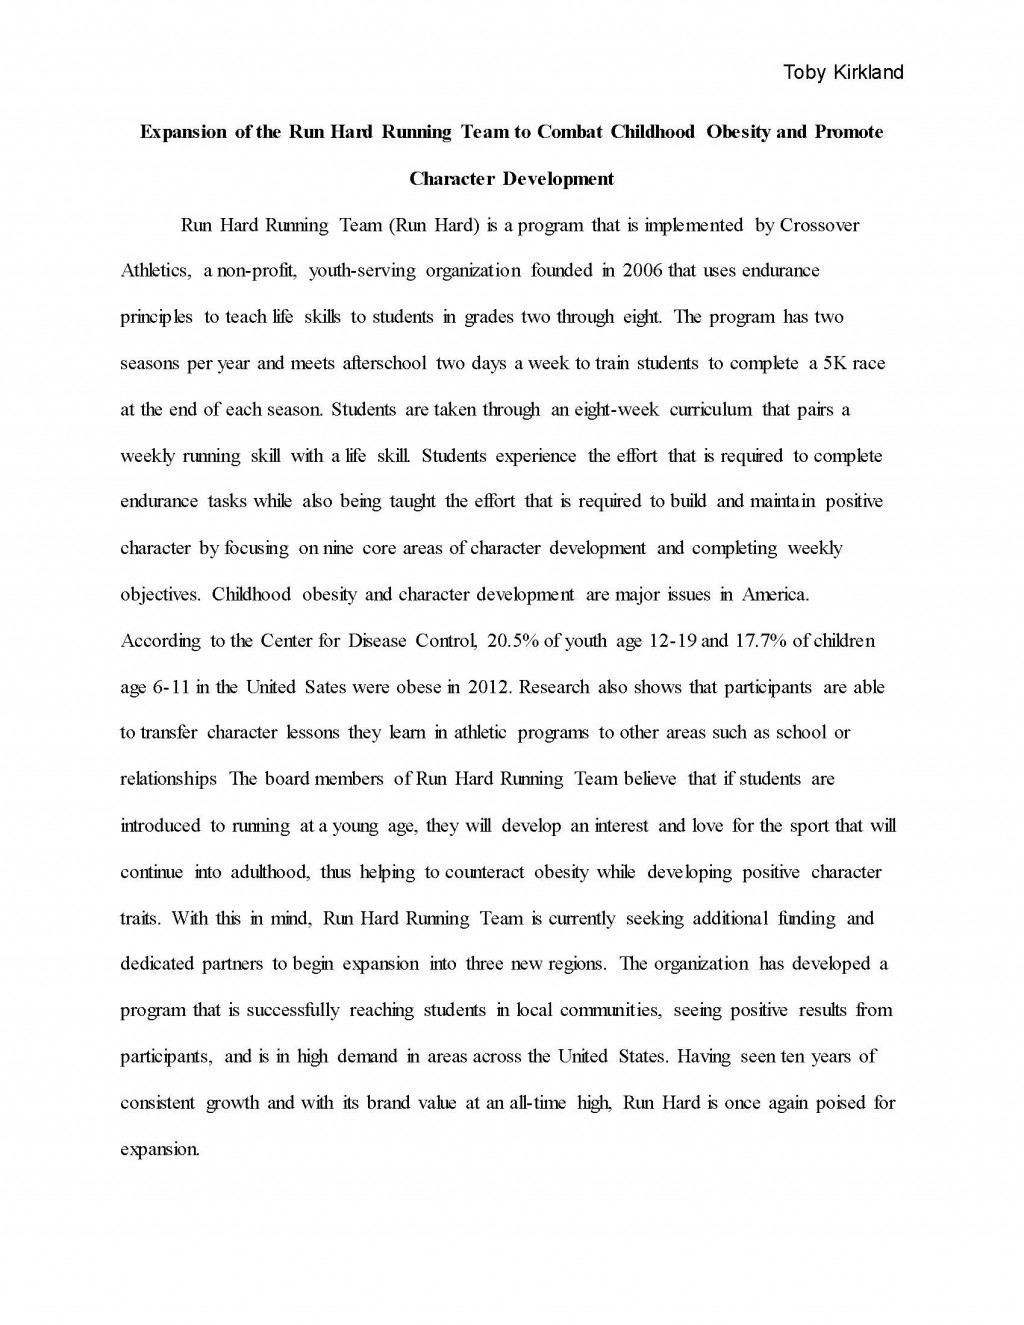 003 Childhood Obesity Research Paper Introduction Toby Kirkland Final Grant Proposal Page 01 Frightening Large